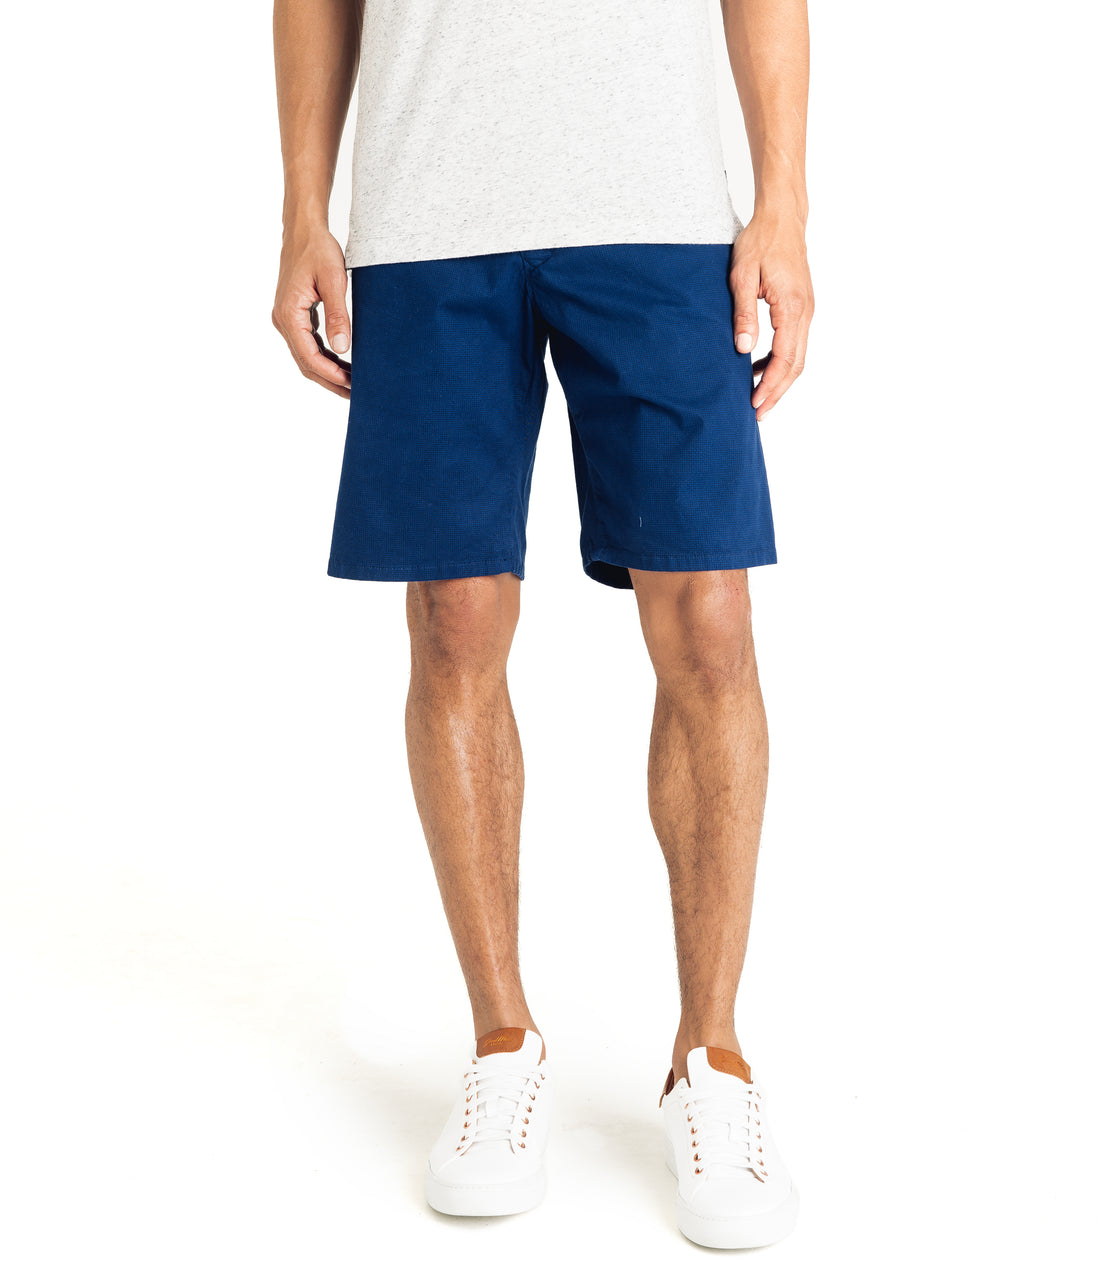 Wrap Diamond Dash Stretch Twill Short - Indigo - Good Man Brand - Wrap Diamond Dash Stretch Twill Short - Indigo